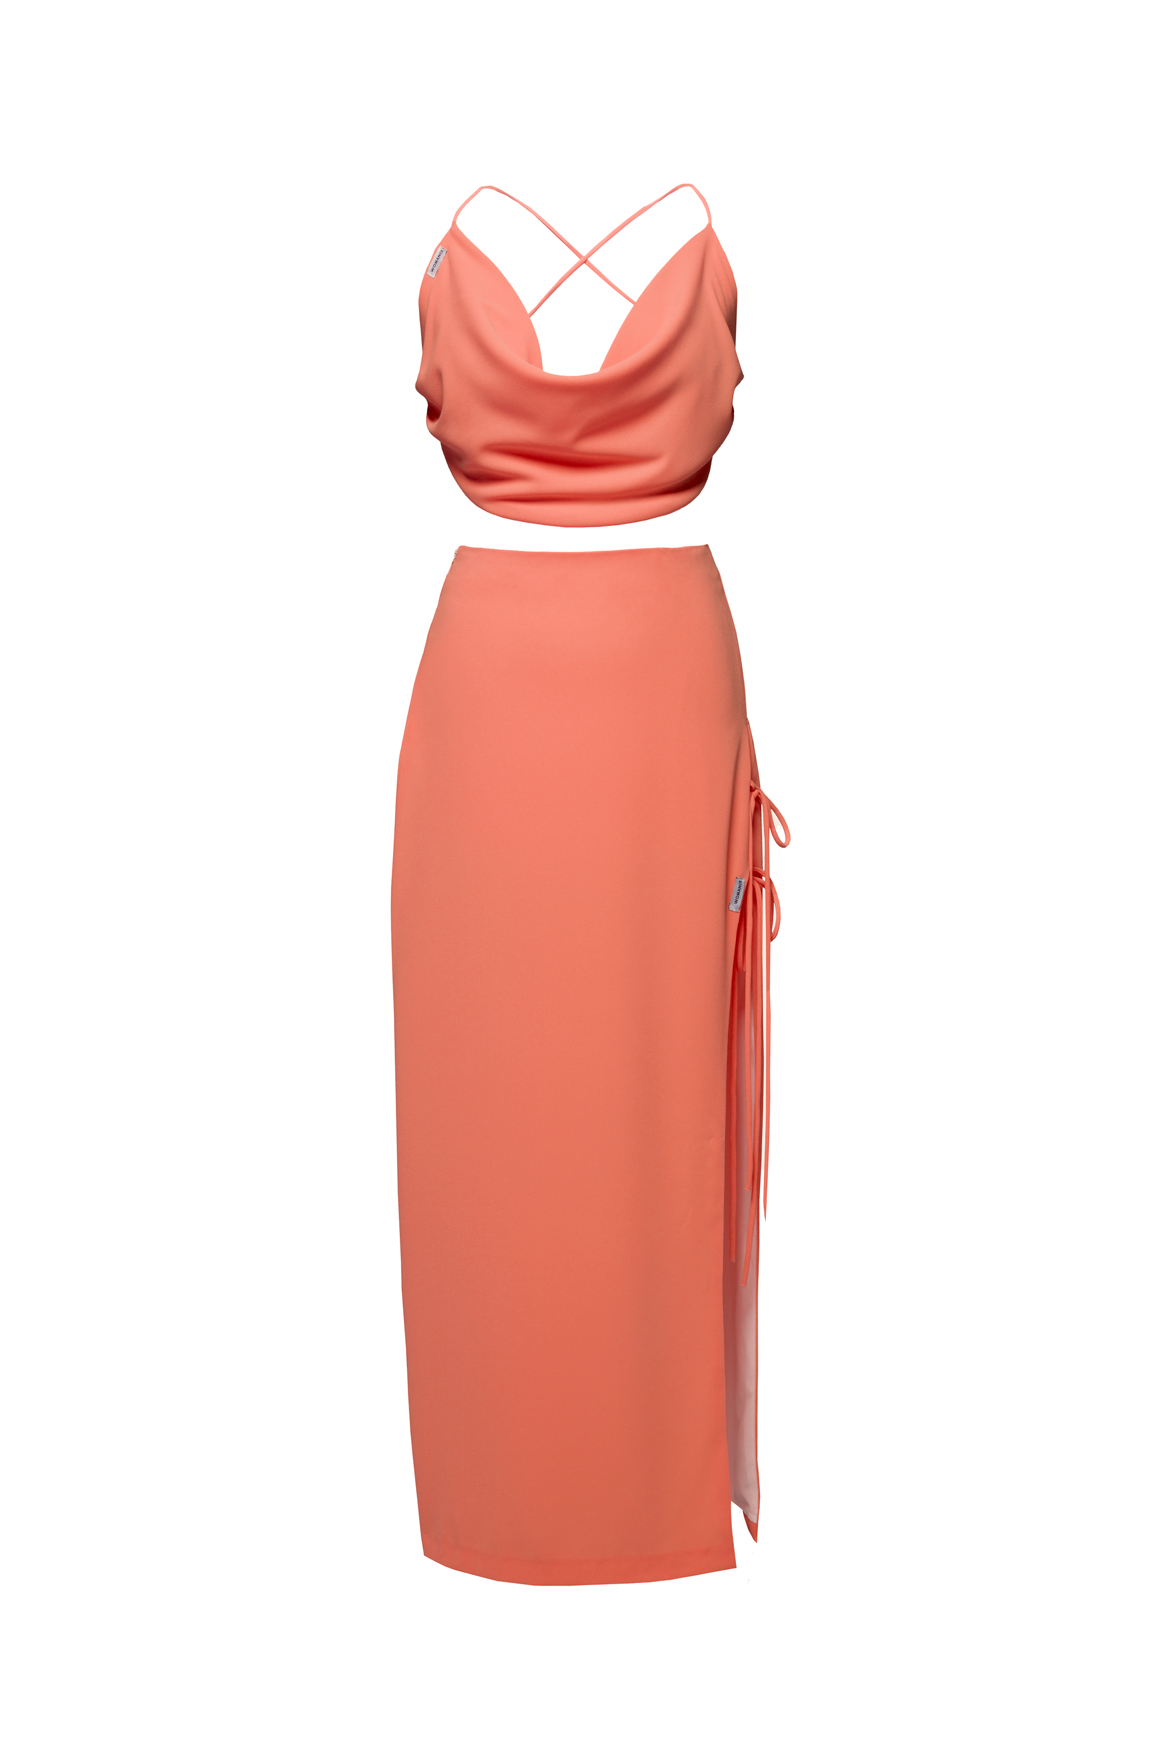 womace-lemon-crop-top-long-skirt-combo-dress-party-coral